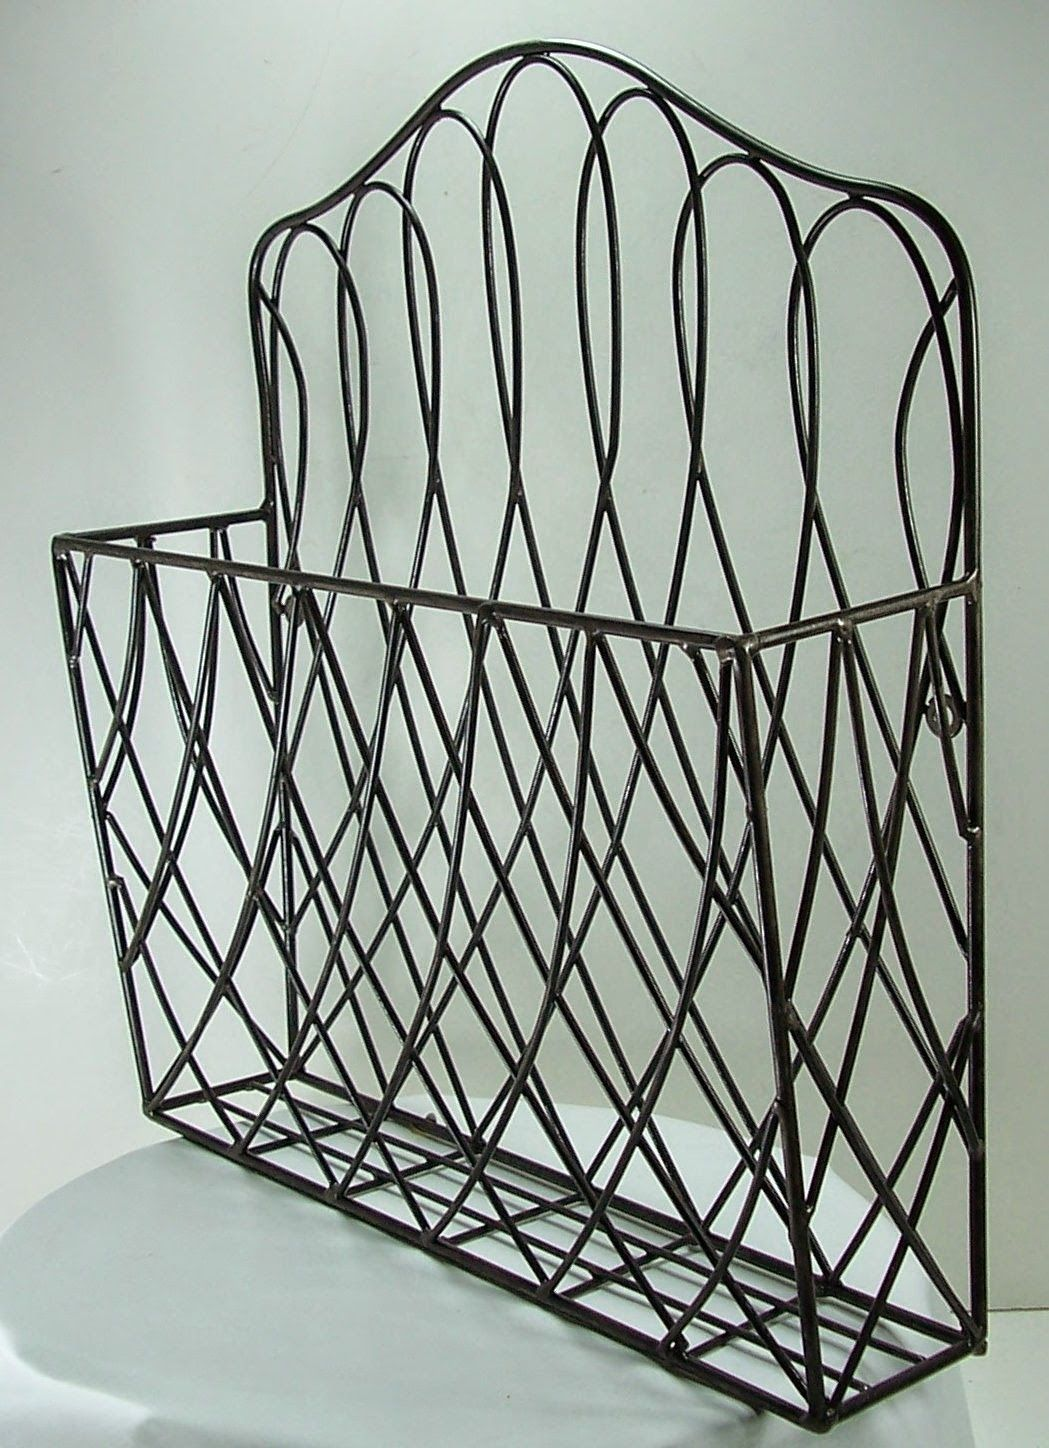 Rustic Style Metal Wire Scroll Wall Pocket Organizer Magazine Flower File Holder from my deeAuvil blog